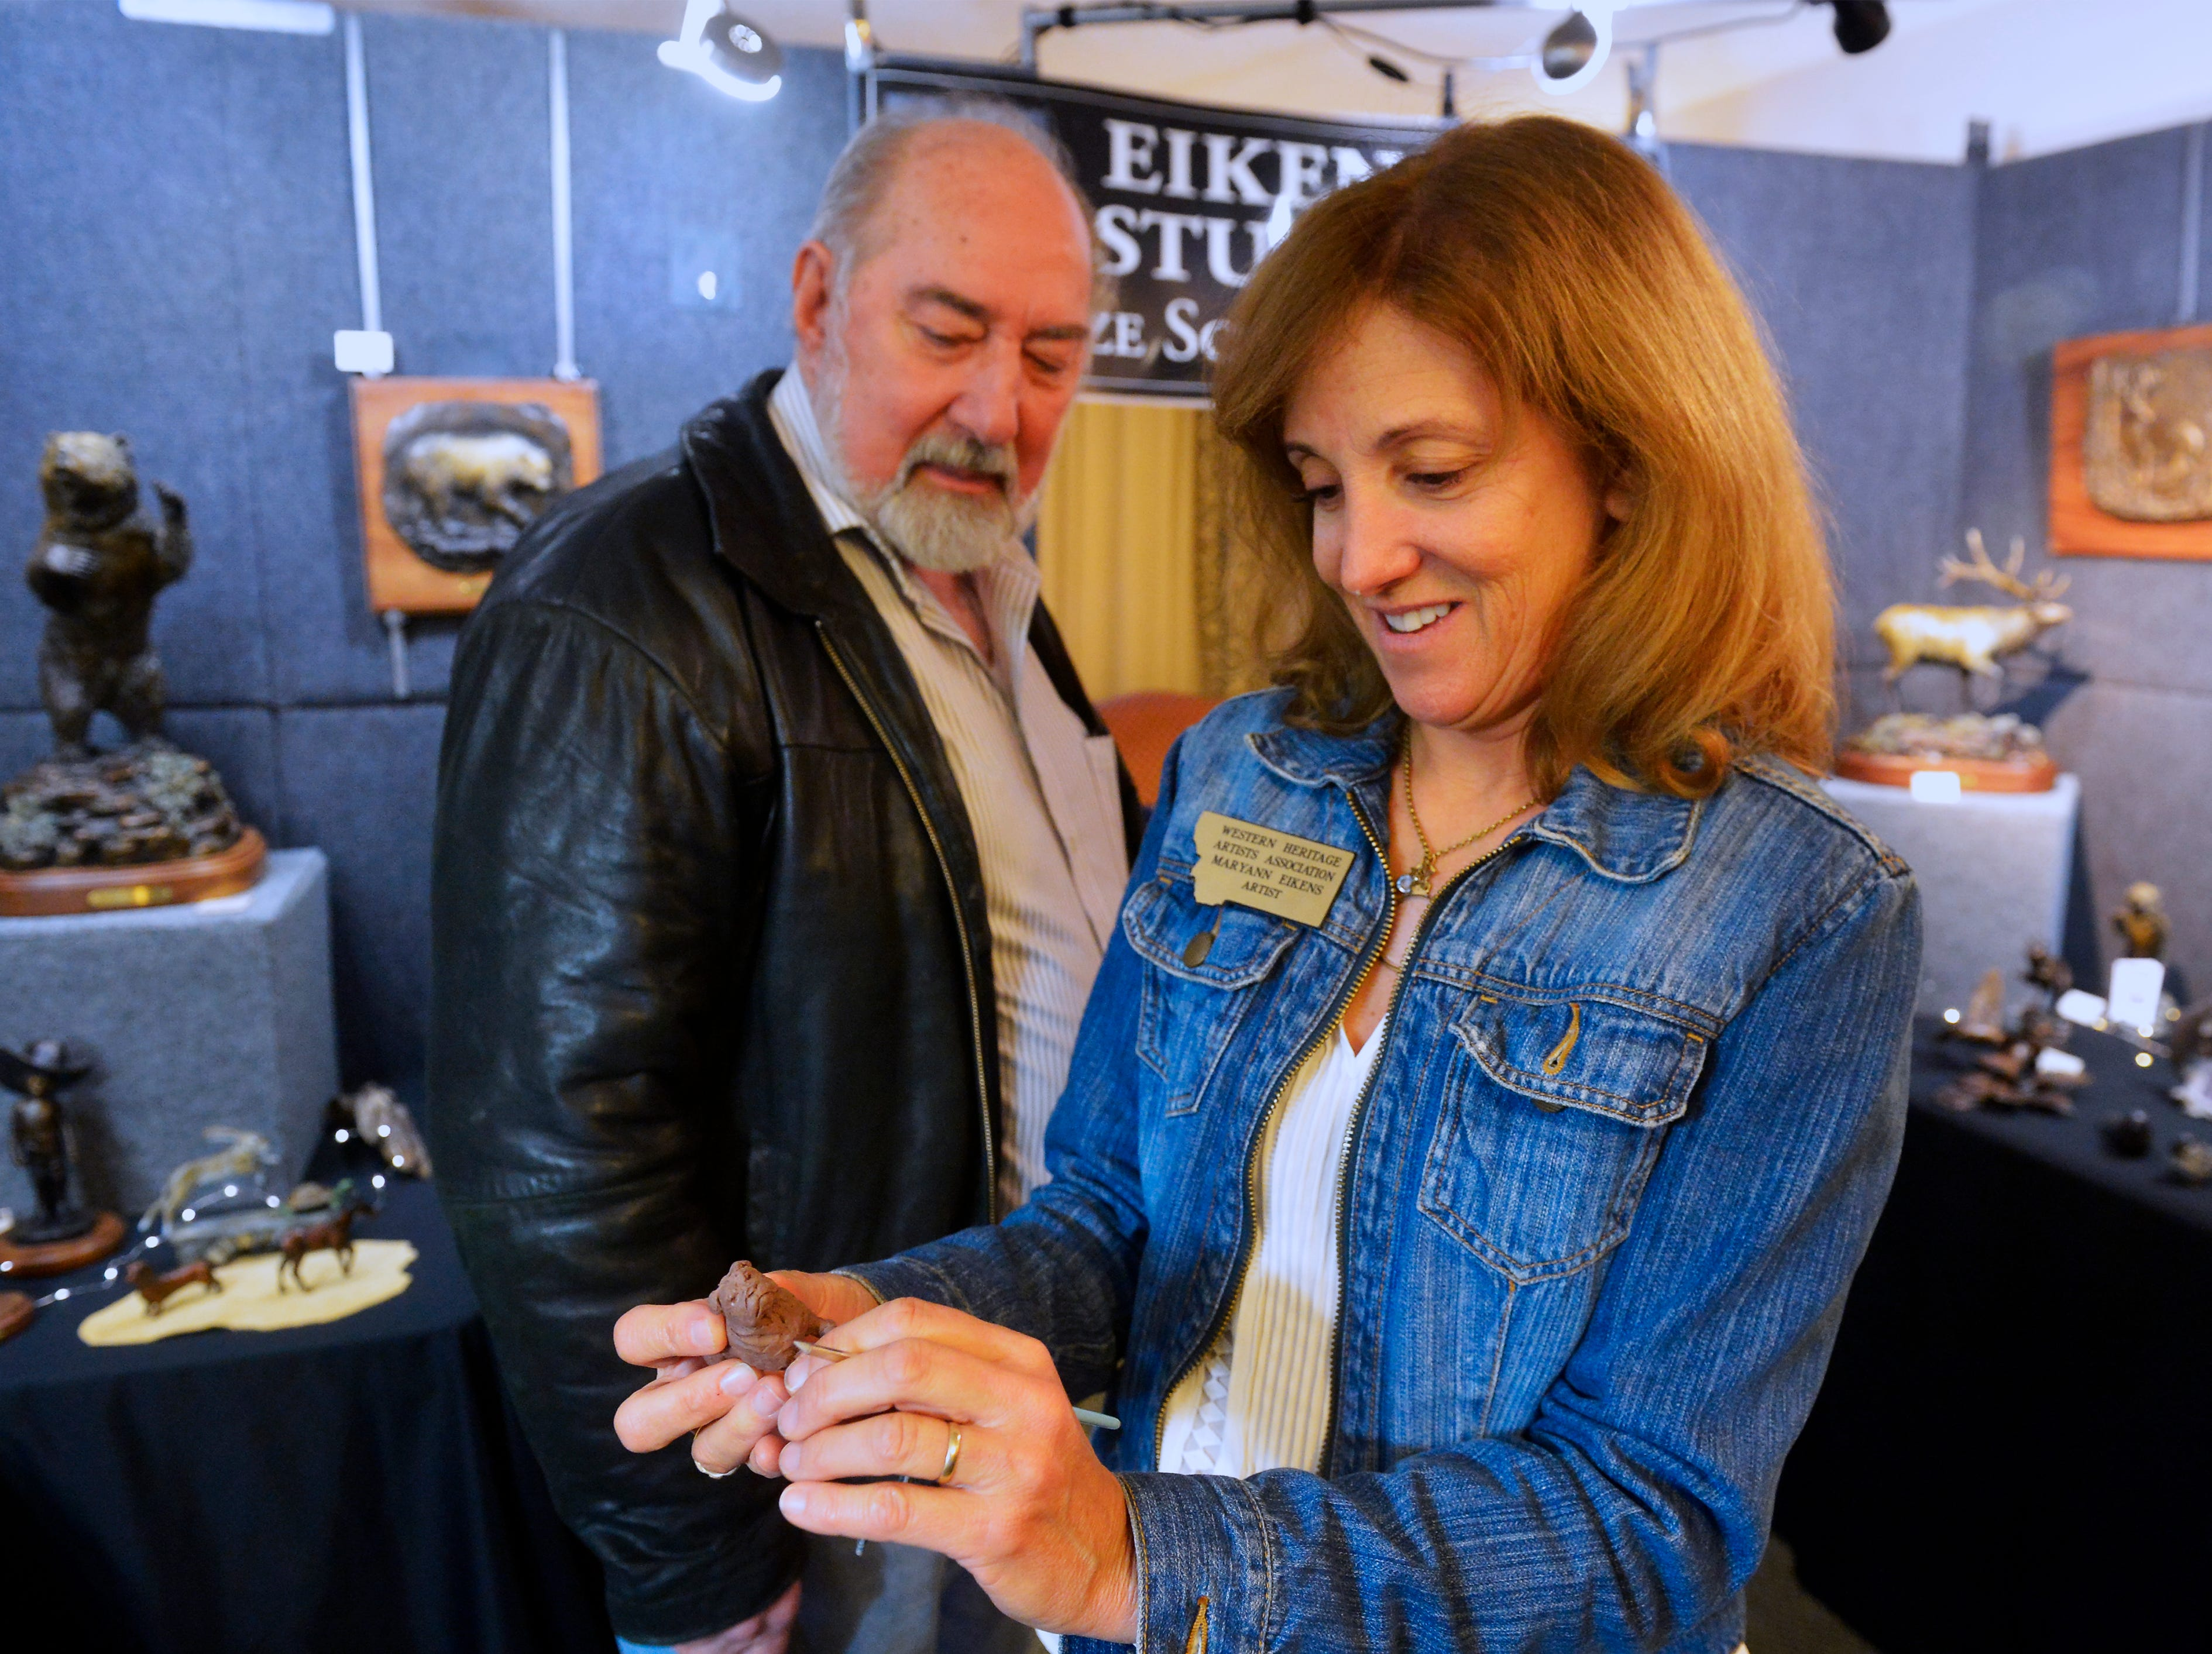 Sculptor Maryann Eikans talks with fellow artist Lyle Schwabauer in her room at the Western Heritage Artists Footprints on the Trail Art Show in the Holiday Inn, Friday.